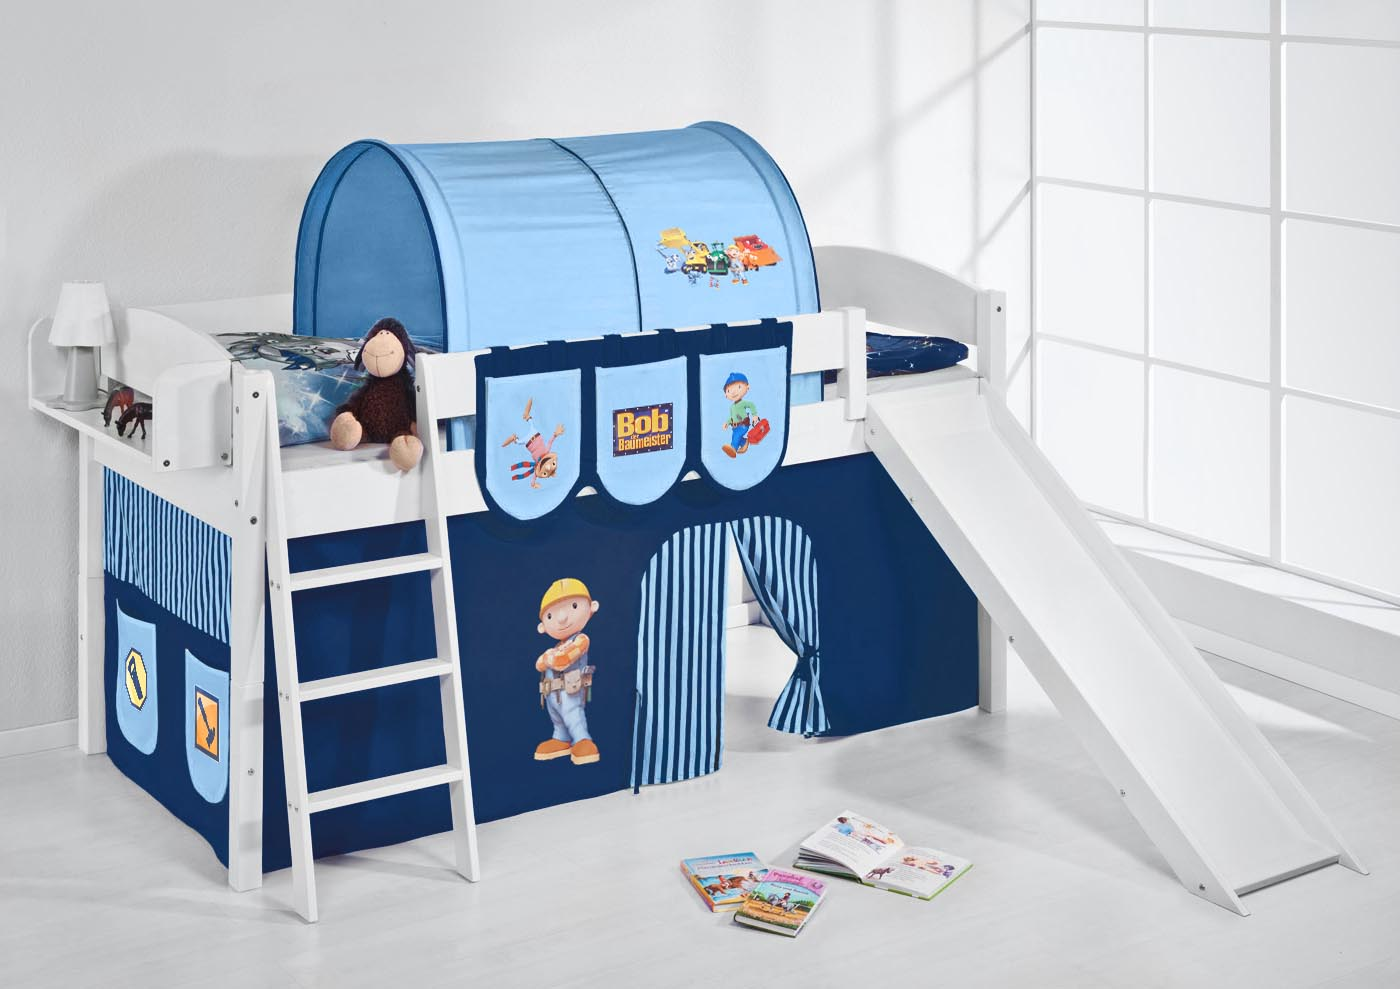 spielbett hochbett etagenbett massiv mit rutsche neu 4105 lilokids ebay. Black Bedroom Furniture Sets. Home Design Ideas